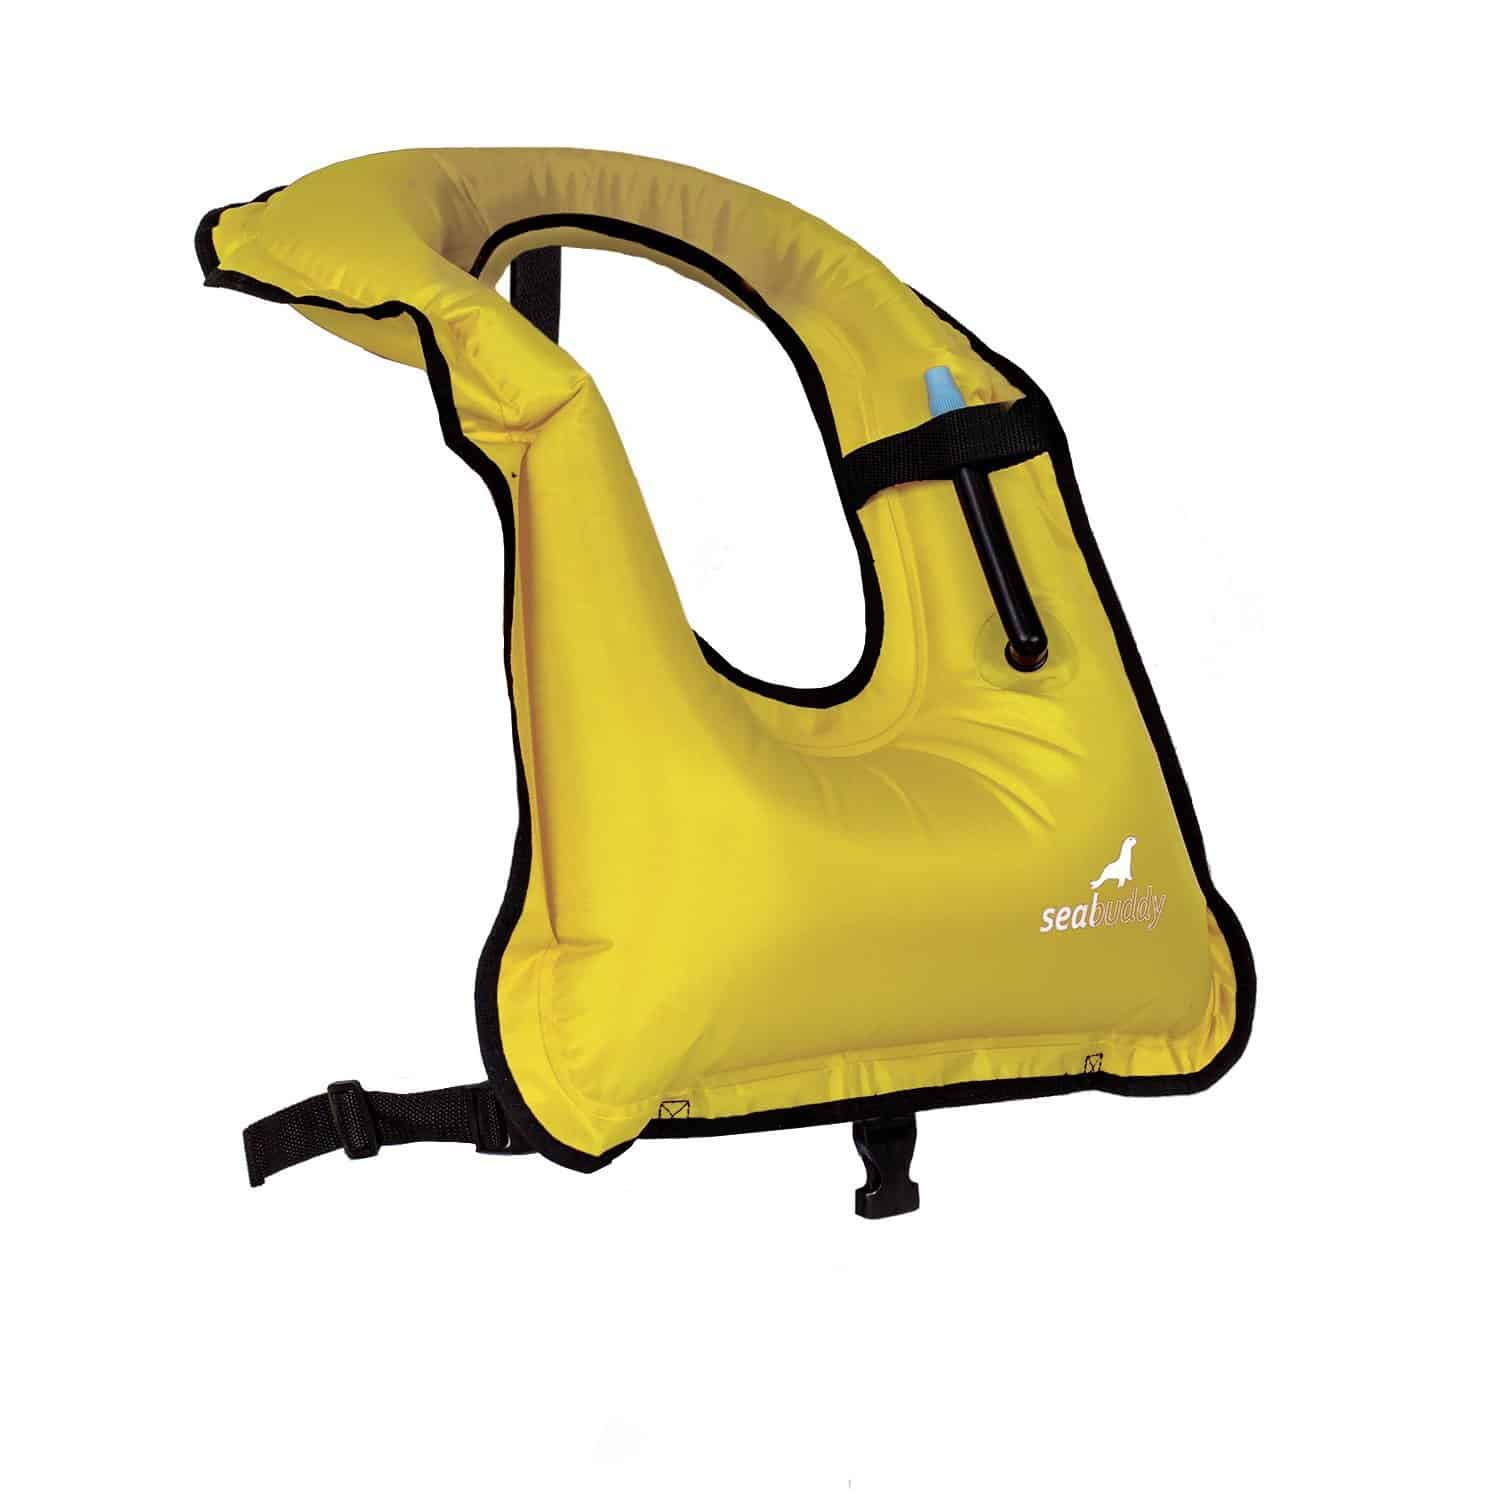 SealBuddy Inflatable Snorkel Vest Yellow